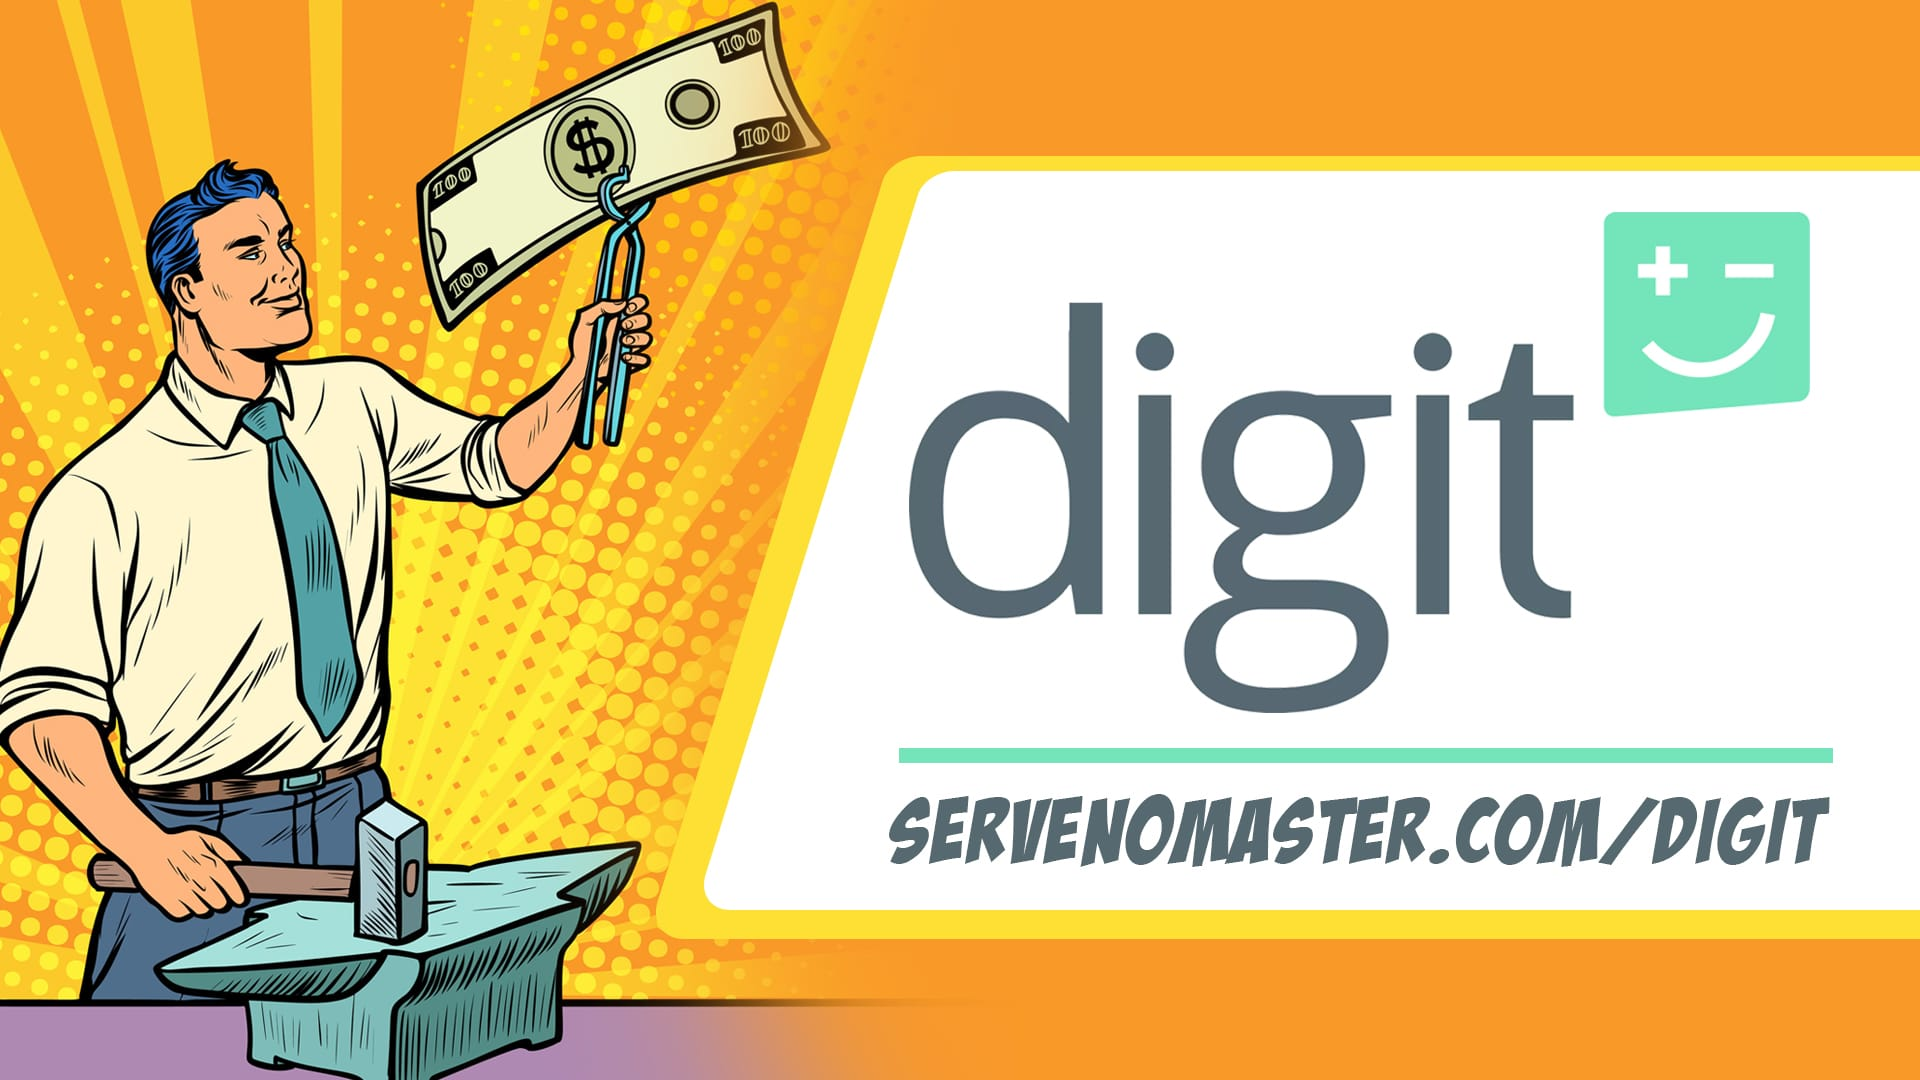 man holding a dollar bill in the air digit affiliate ad seo basics animated illustratoion